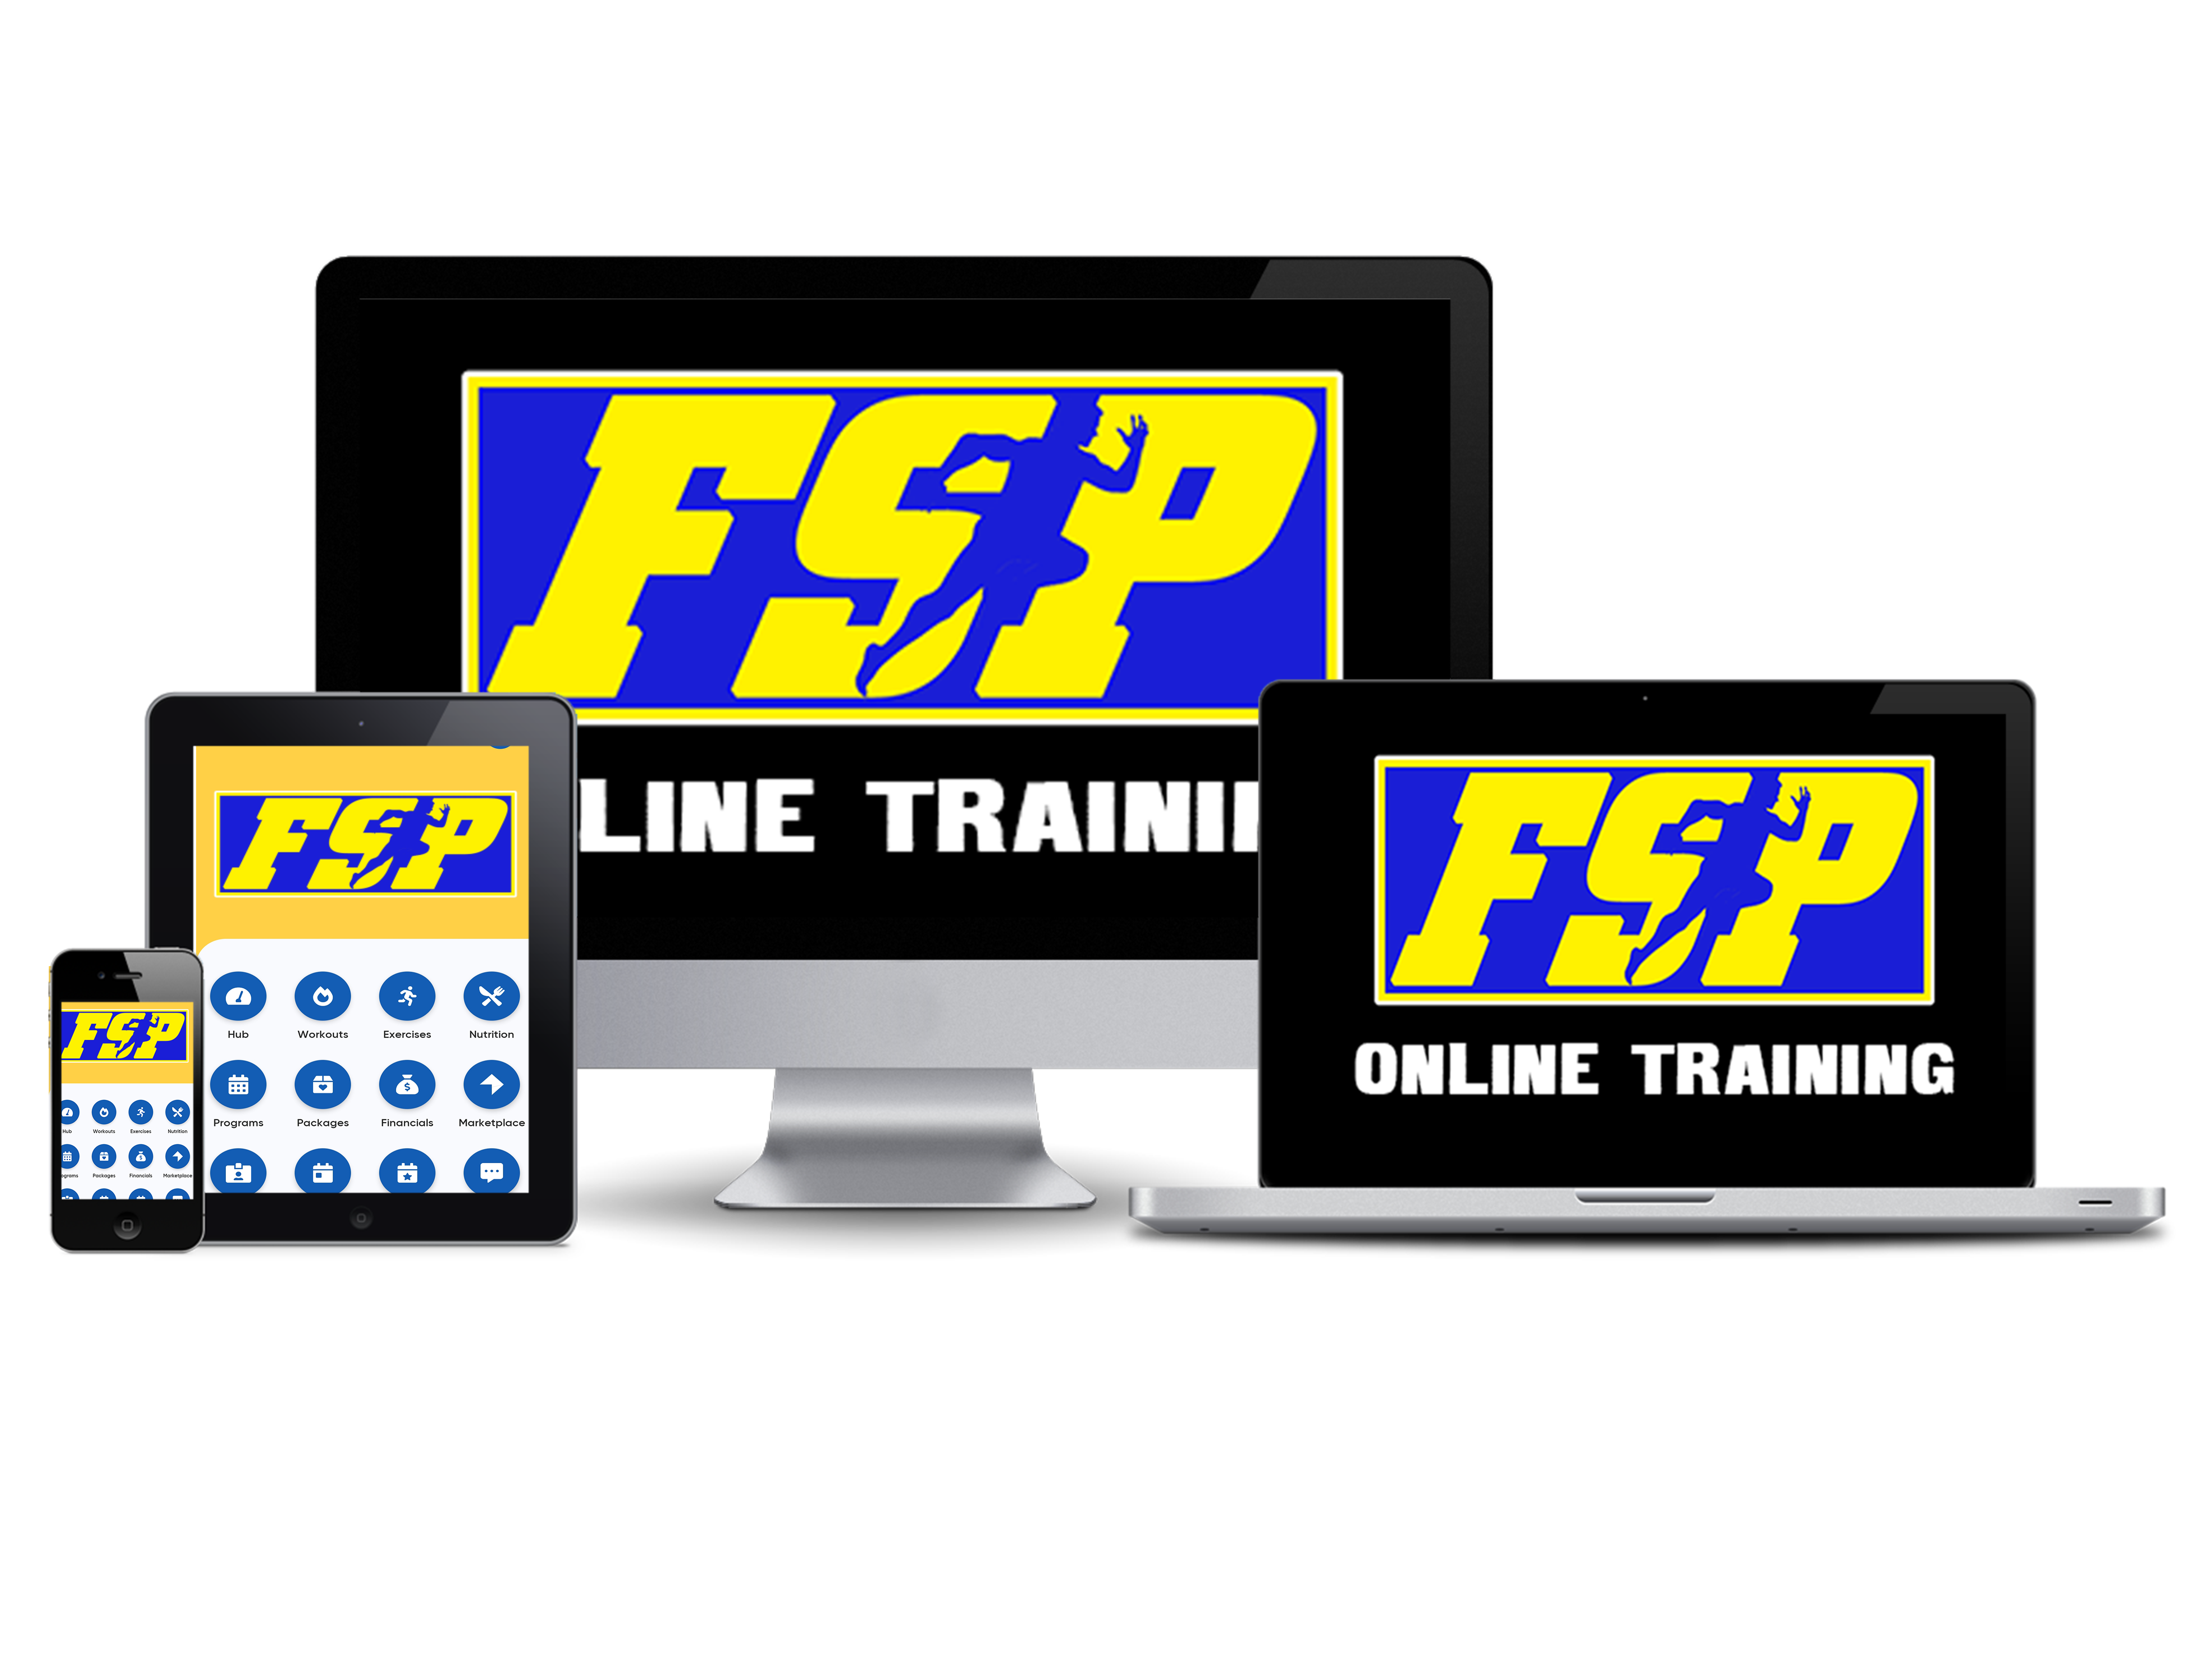 hybrid online training compatible devices image